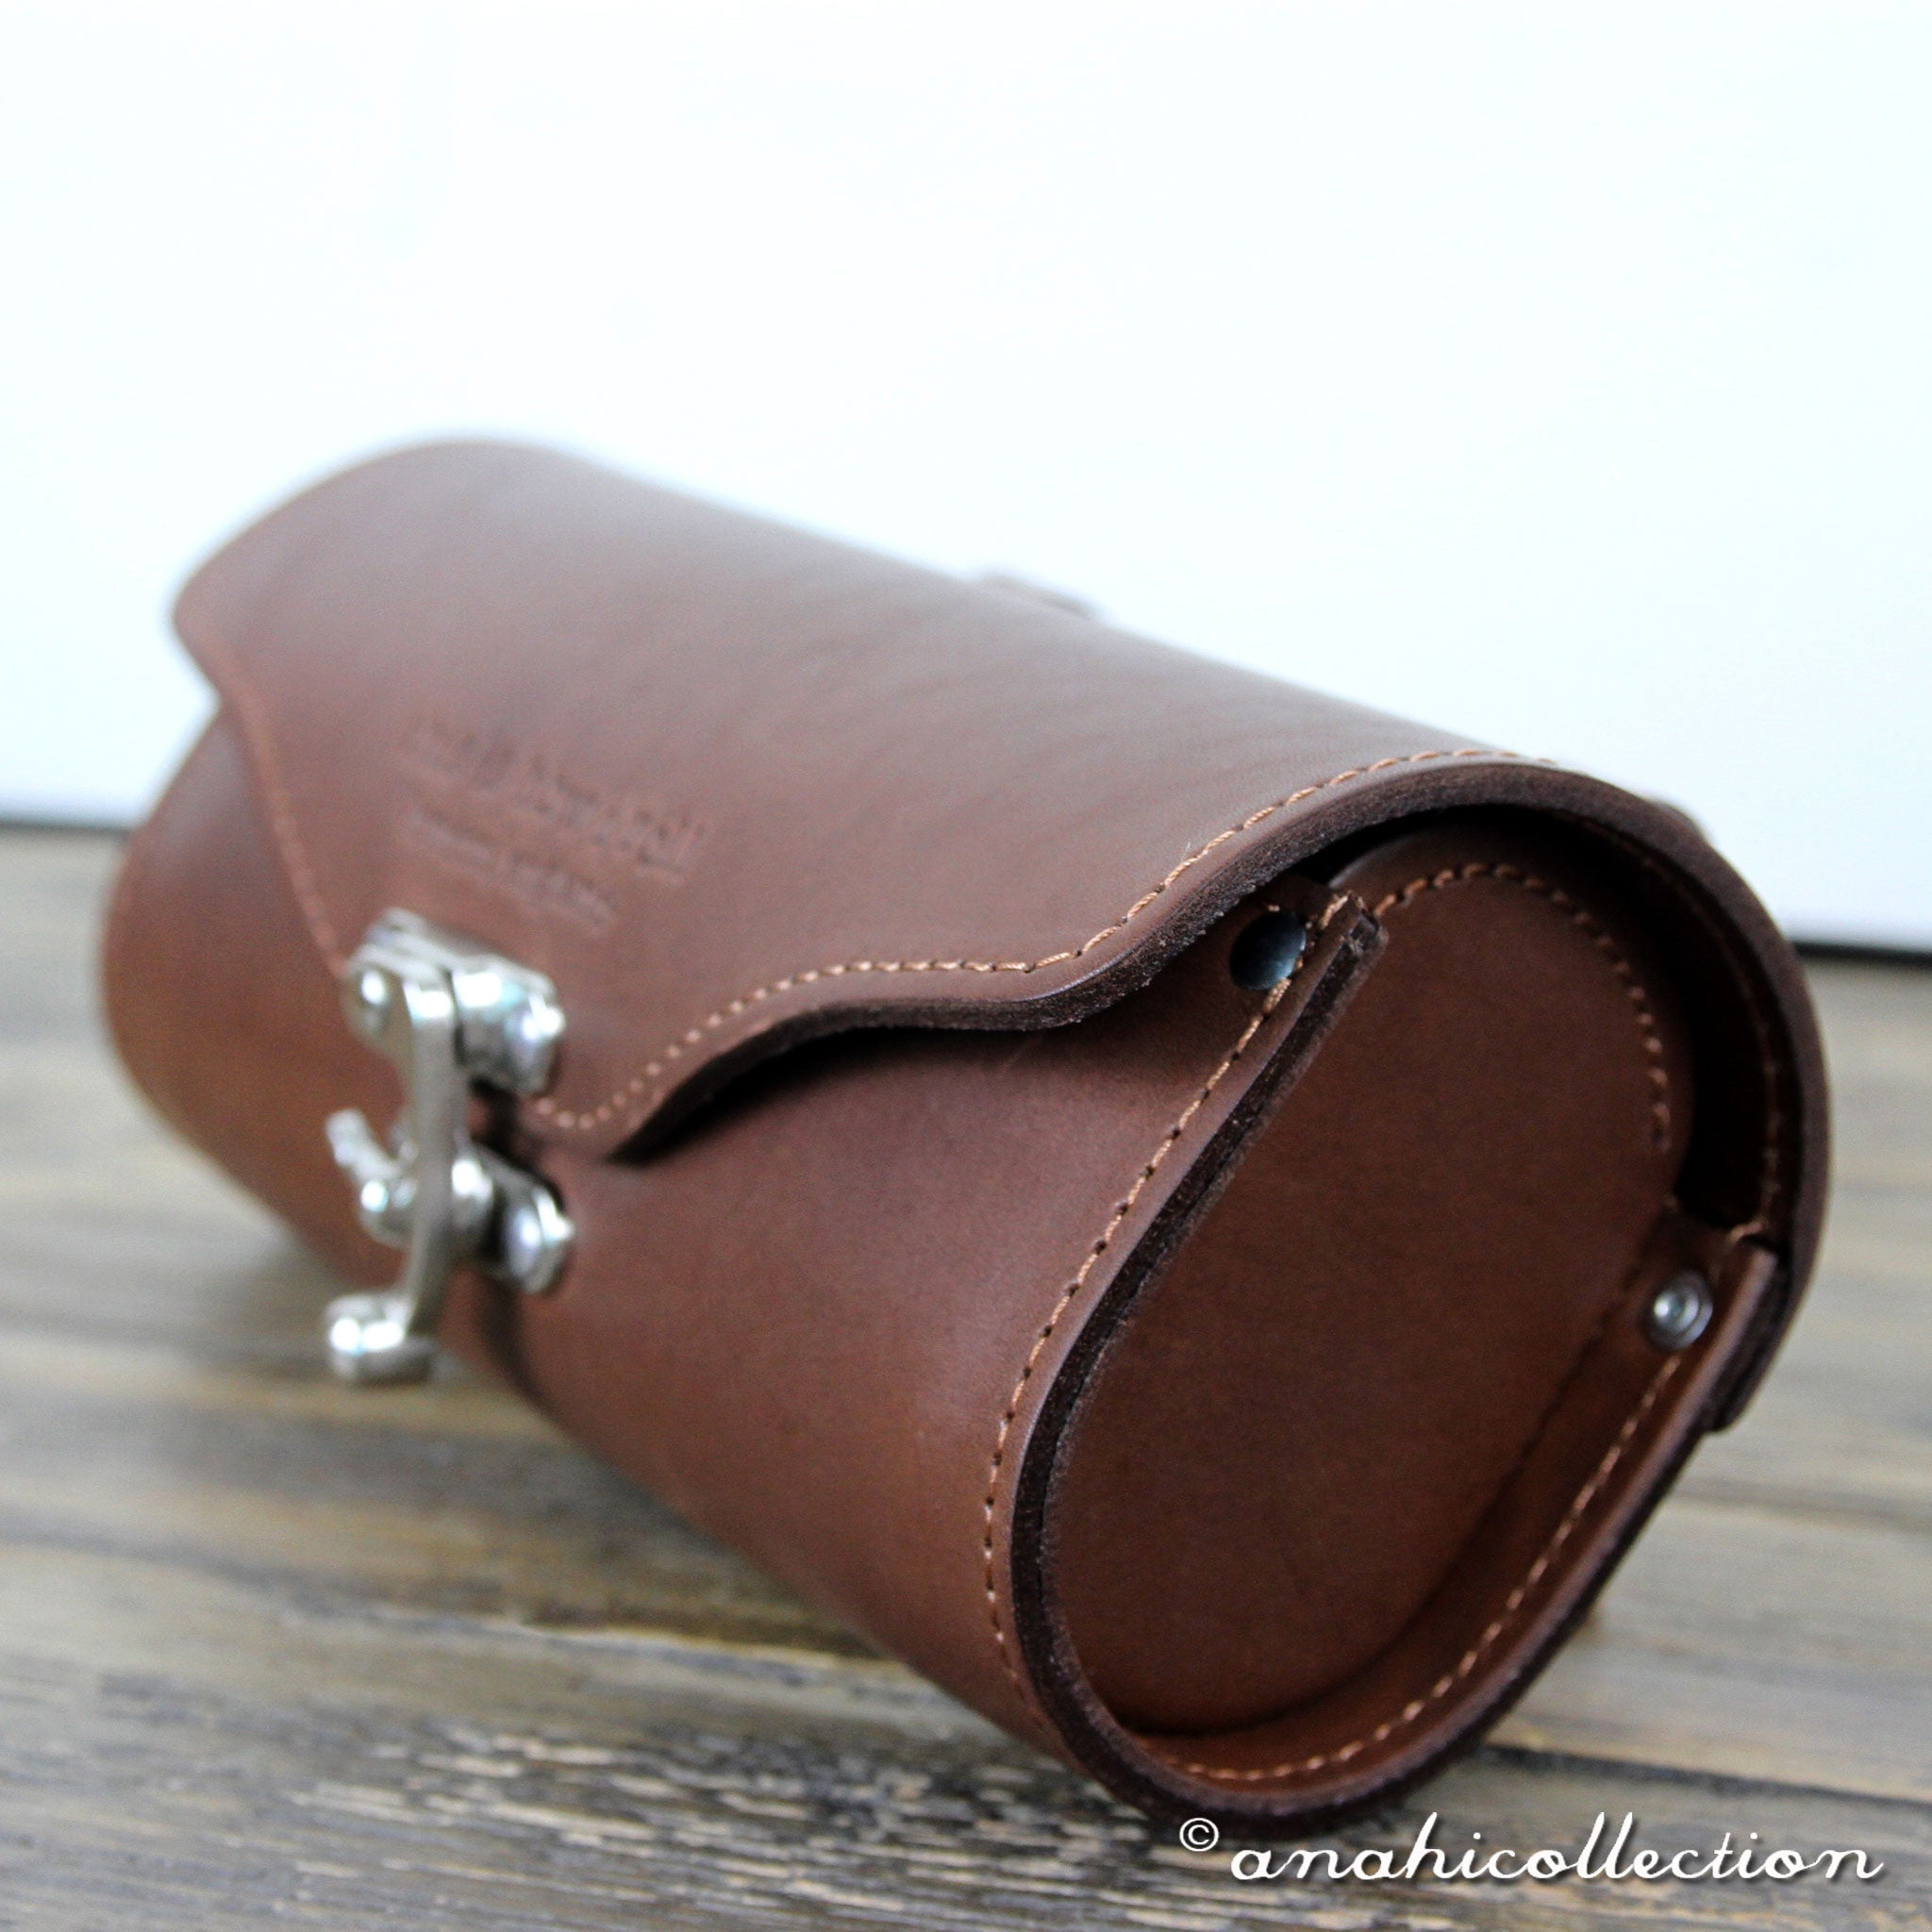 Handmade Saddle Bag